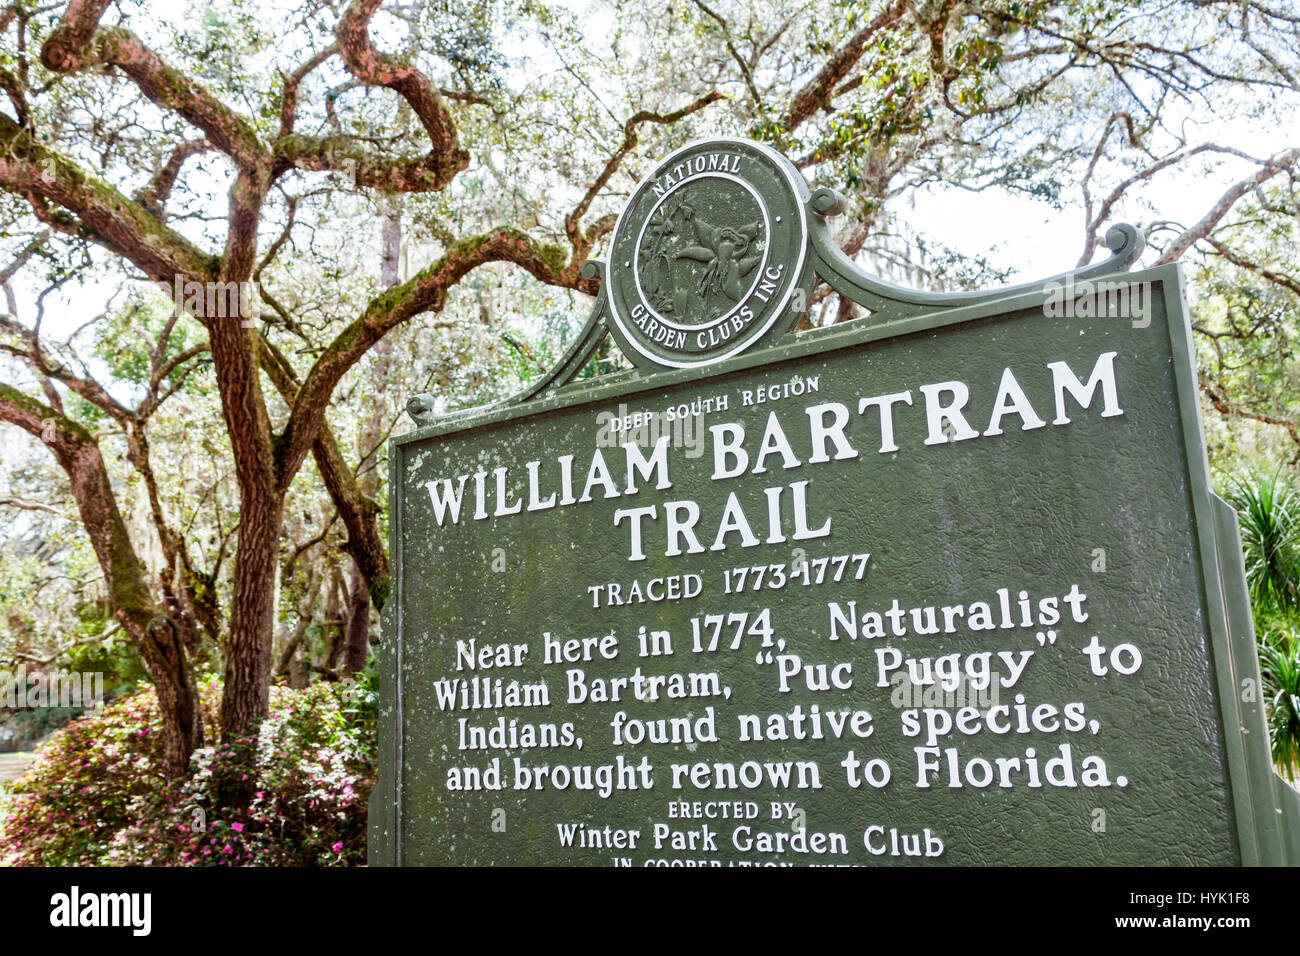 Exceptionnel Winter Park Orlando Florida Mead Botanical Garden Winter Park Garden Club  William Bartram Trail Historical Marker Sign